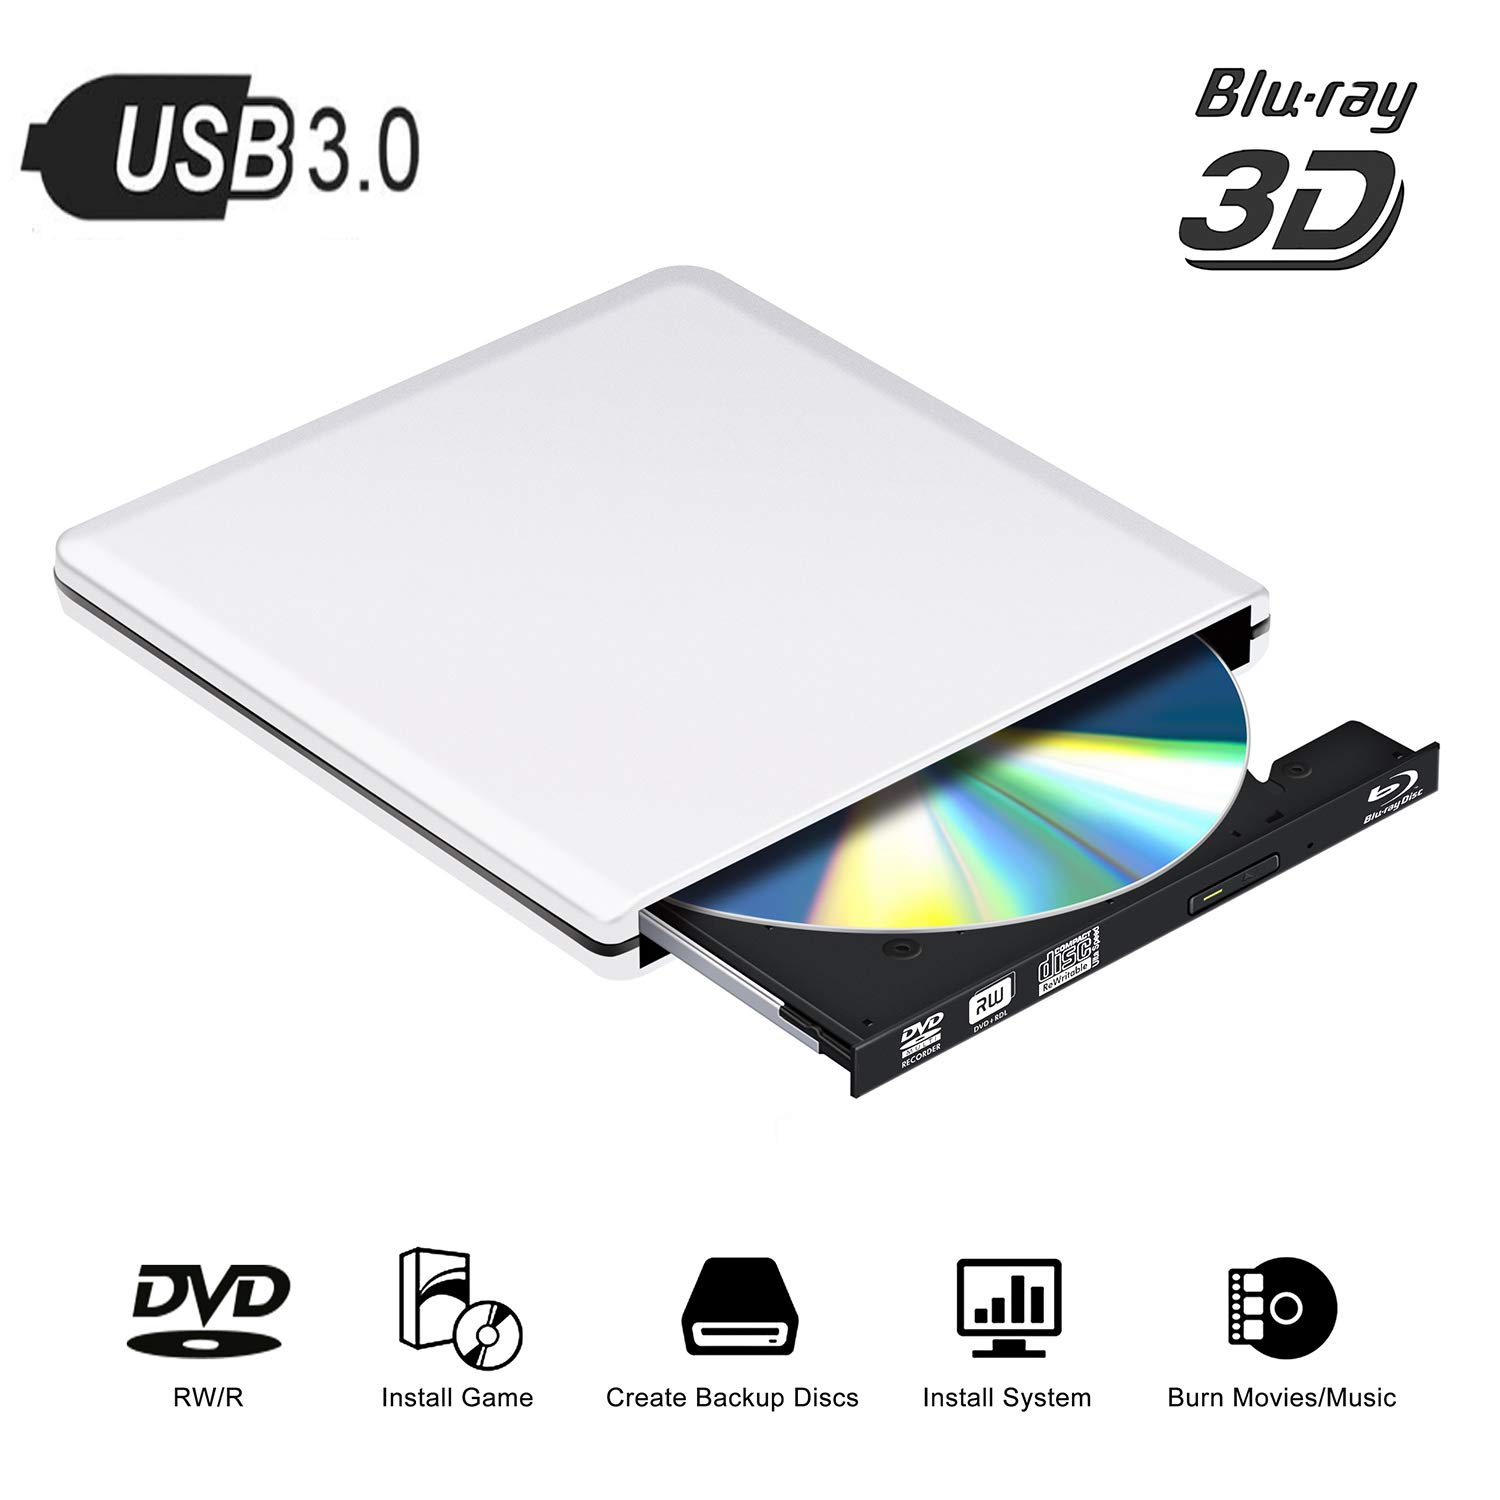 External Blu Ray DVD Drive 4K 3D, USB 3.0 Portable Bluray CD DVD Player Reader Optical RW Row Disk Burner for Laptop Mac OS, Windows 7/8/10,Linxus, PC,Desktop (Silver) by PiAEK (Image #1)